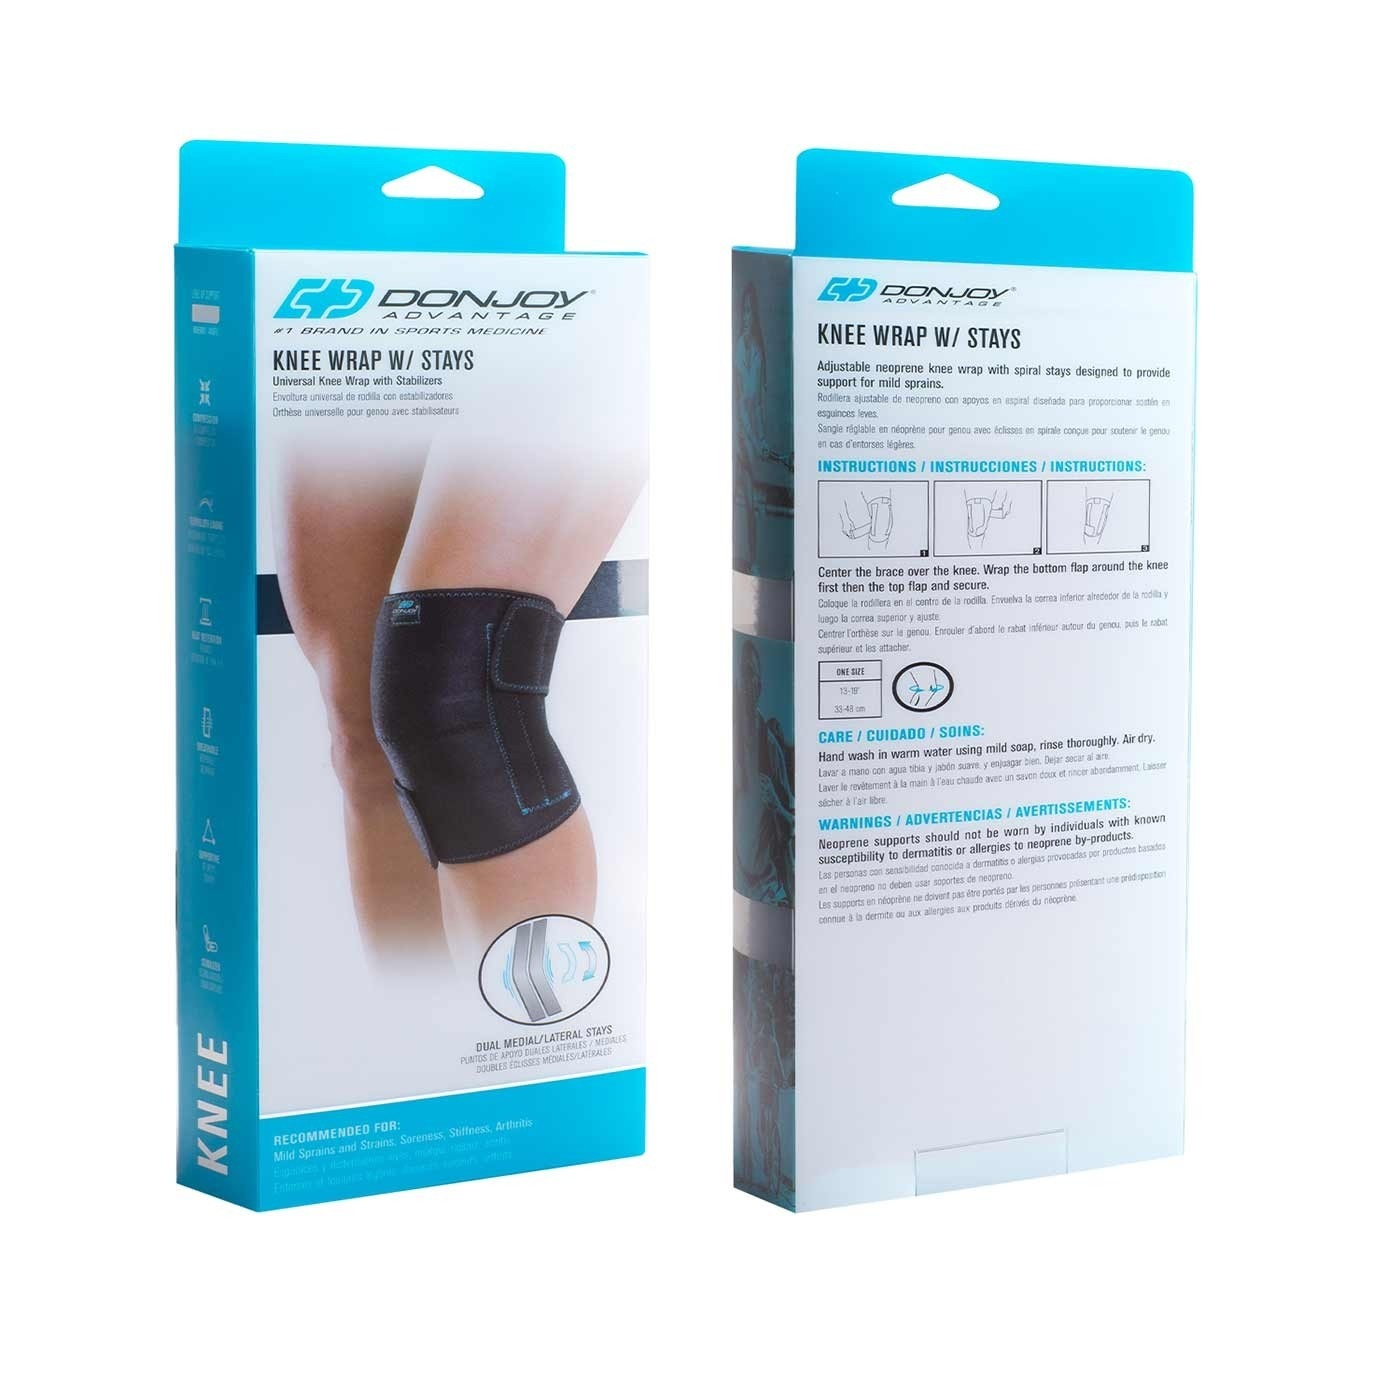 e93bc6cde1 DonJoy Advantage Knee Wrap with Stays, Universal Size | FSAstore.com